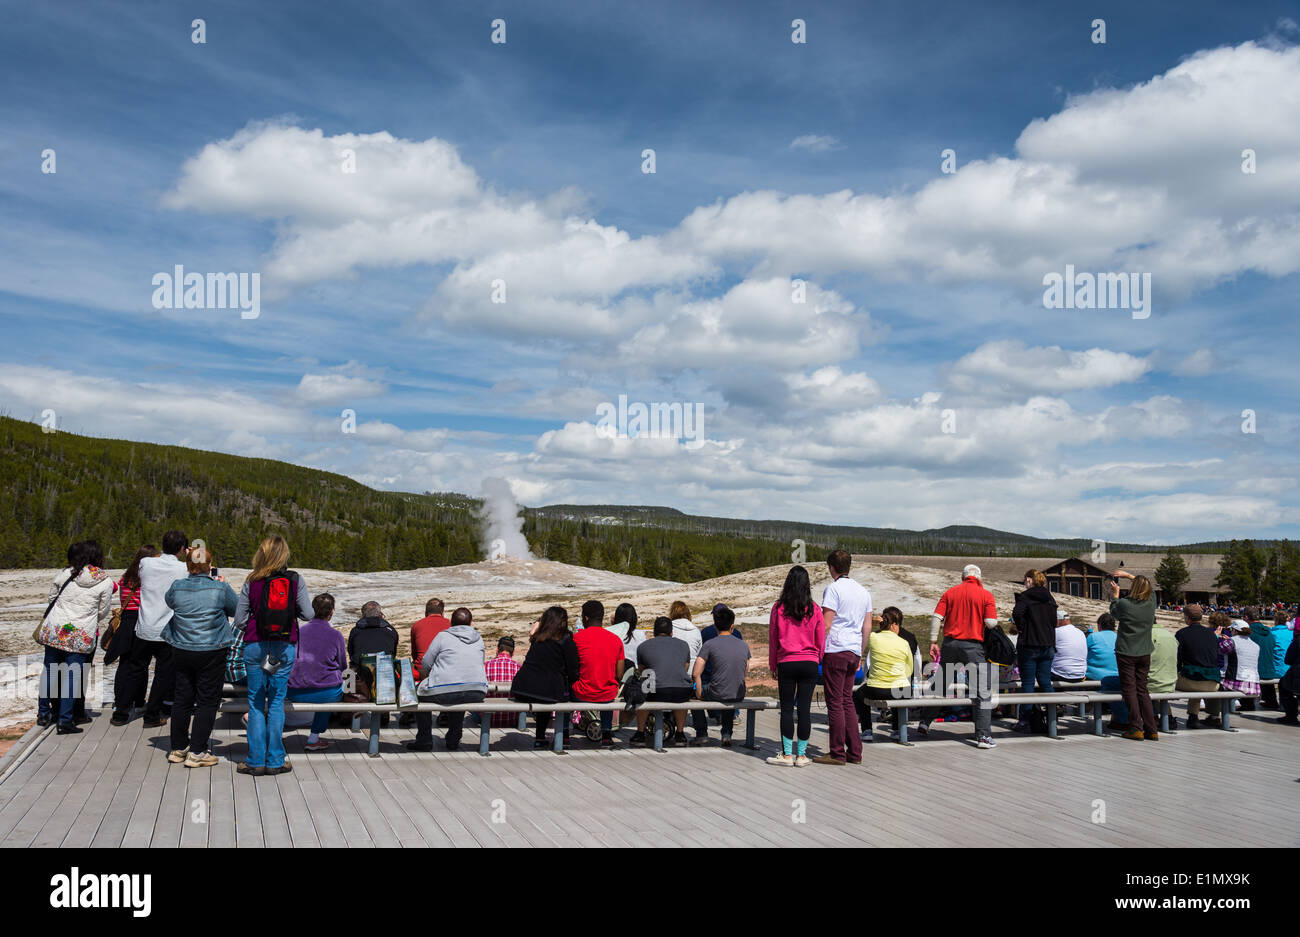 Visitors gather in front of the Old Faithful Geyser for its eruption. Yellowstone National Park, Wyoming, USA. - Stock Image